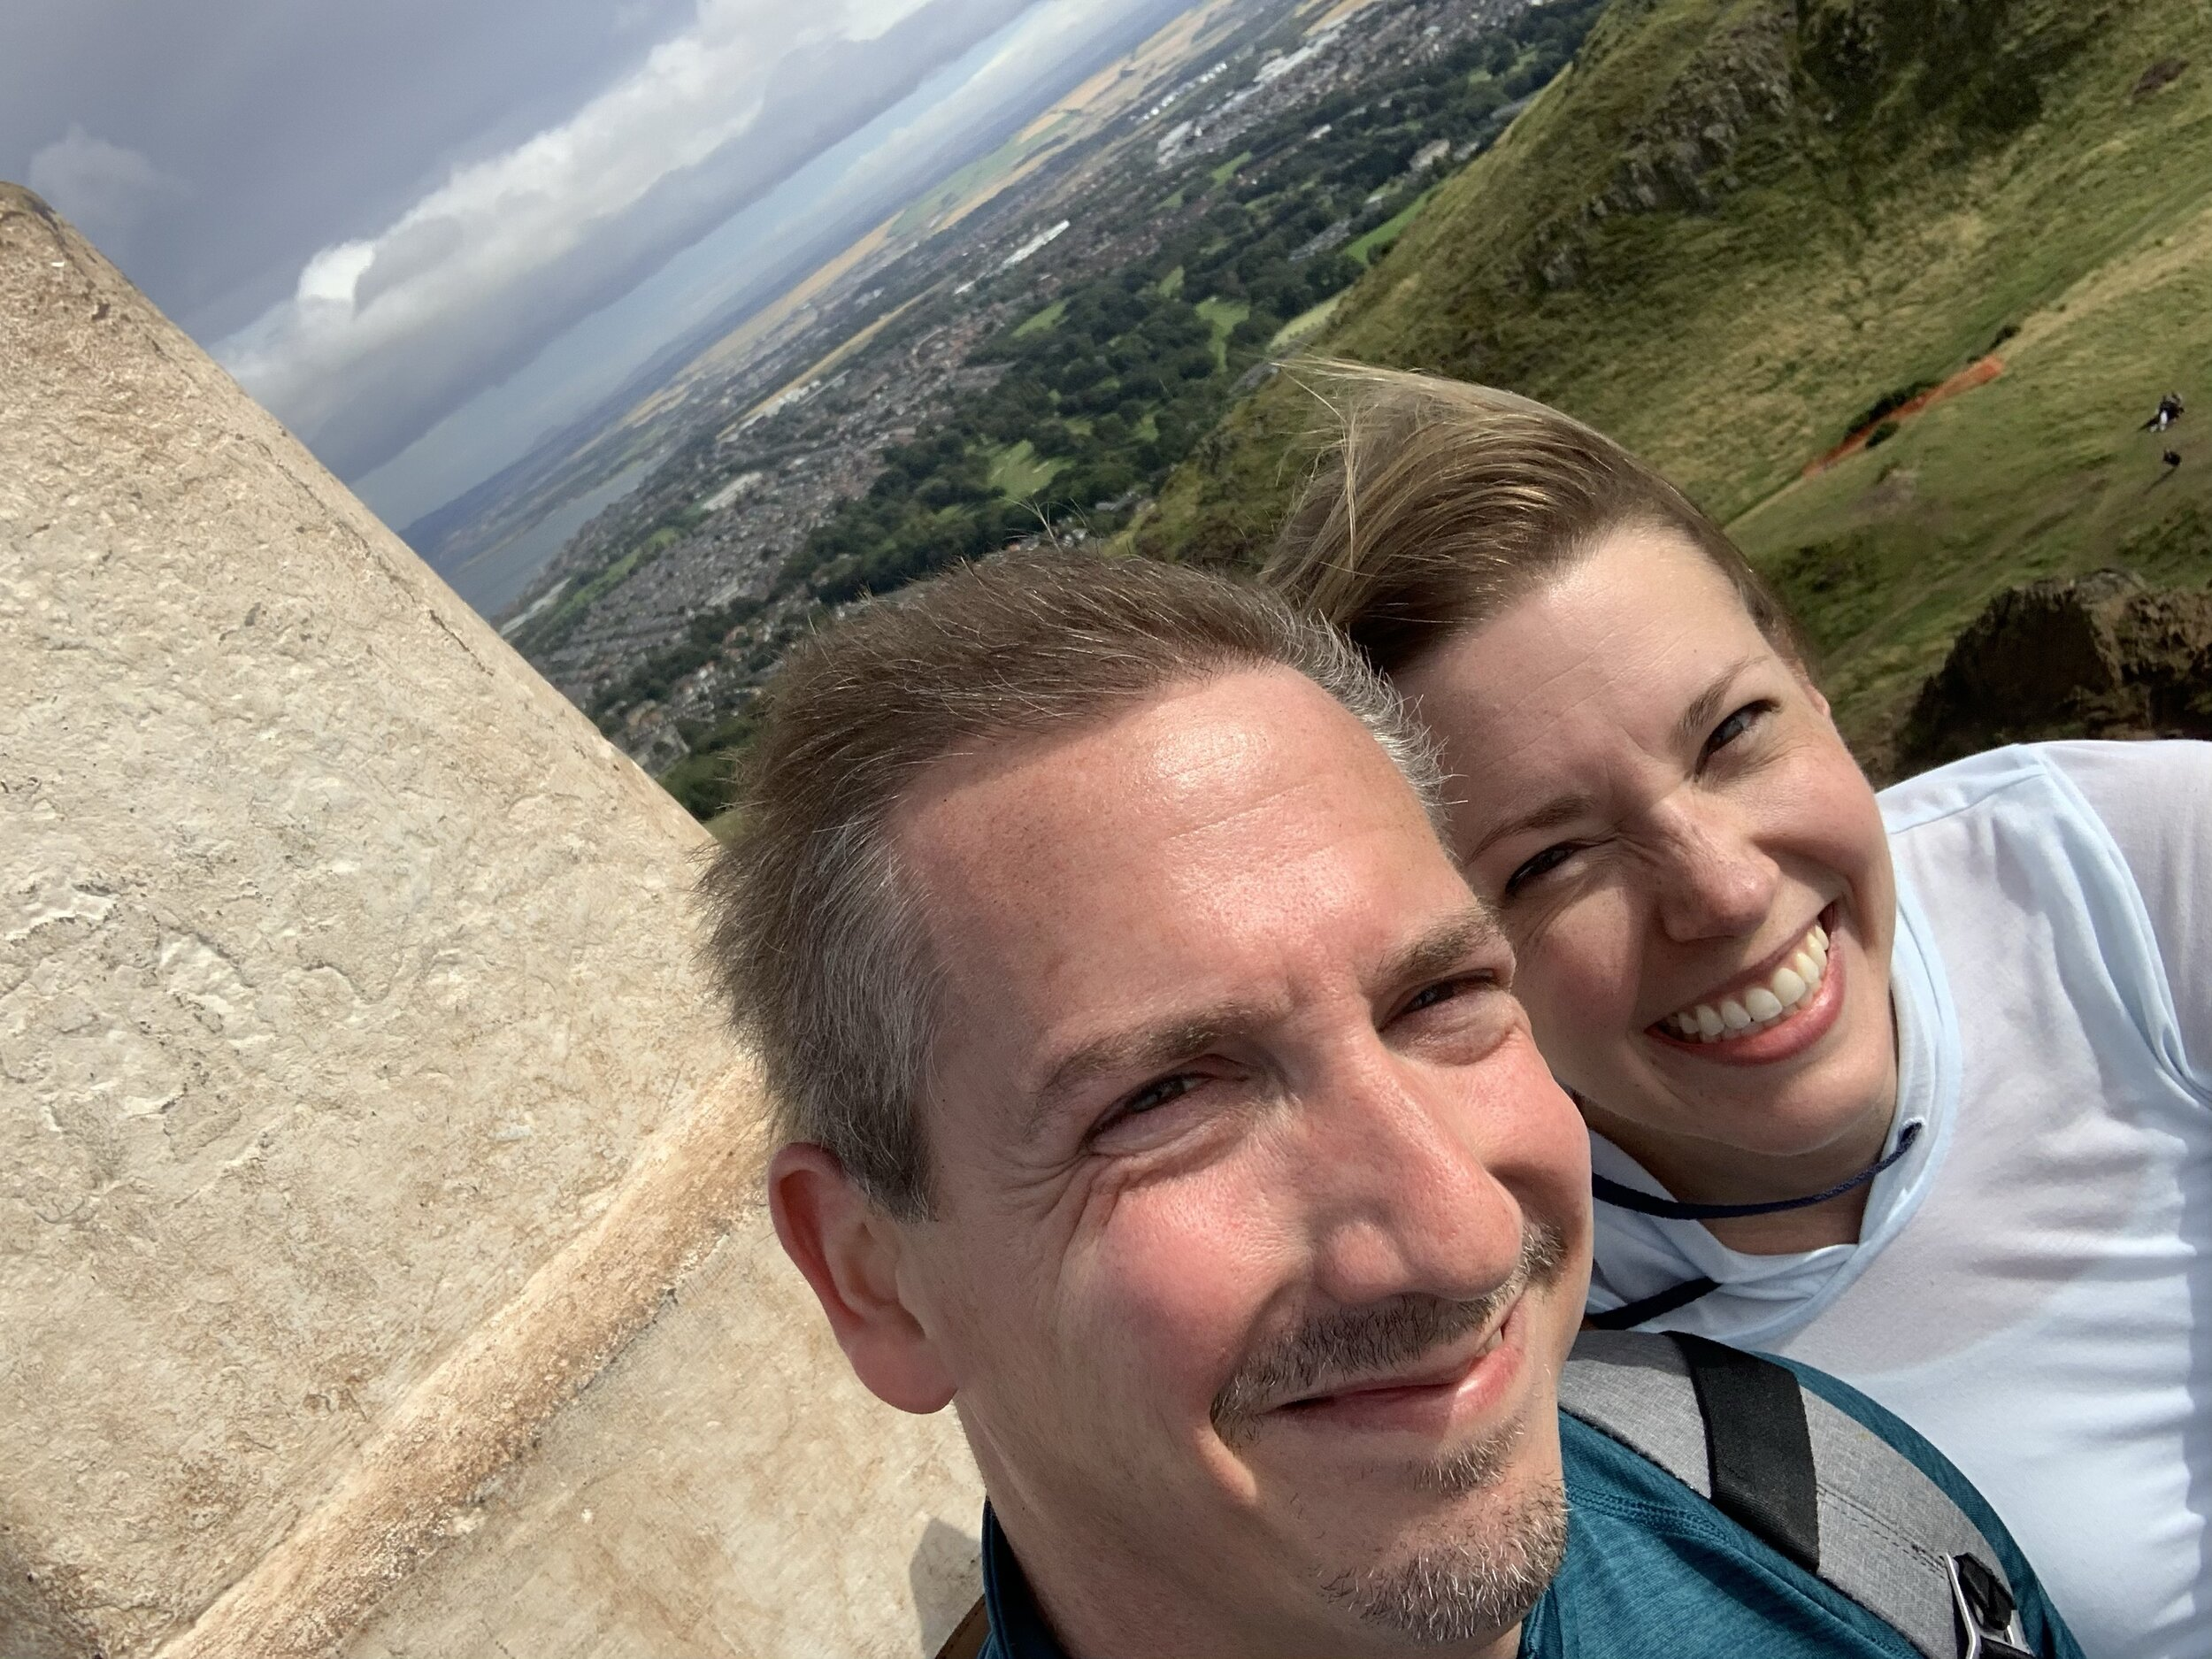 A Very Windy Selfie at Arthur's Seat!